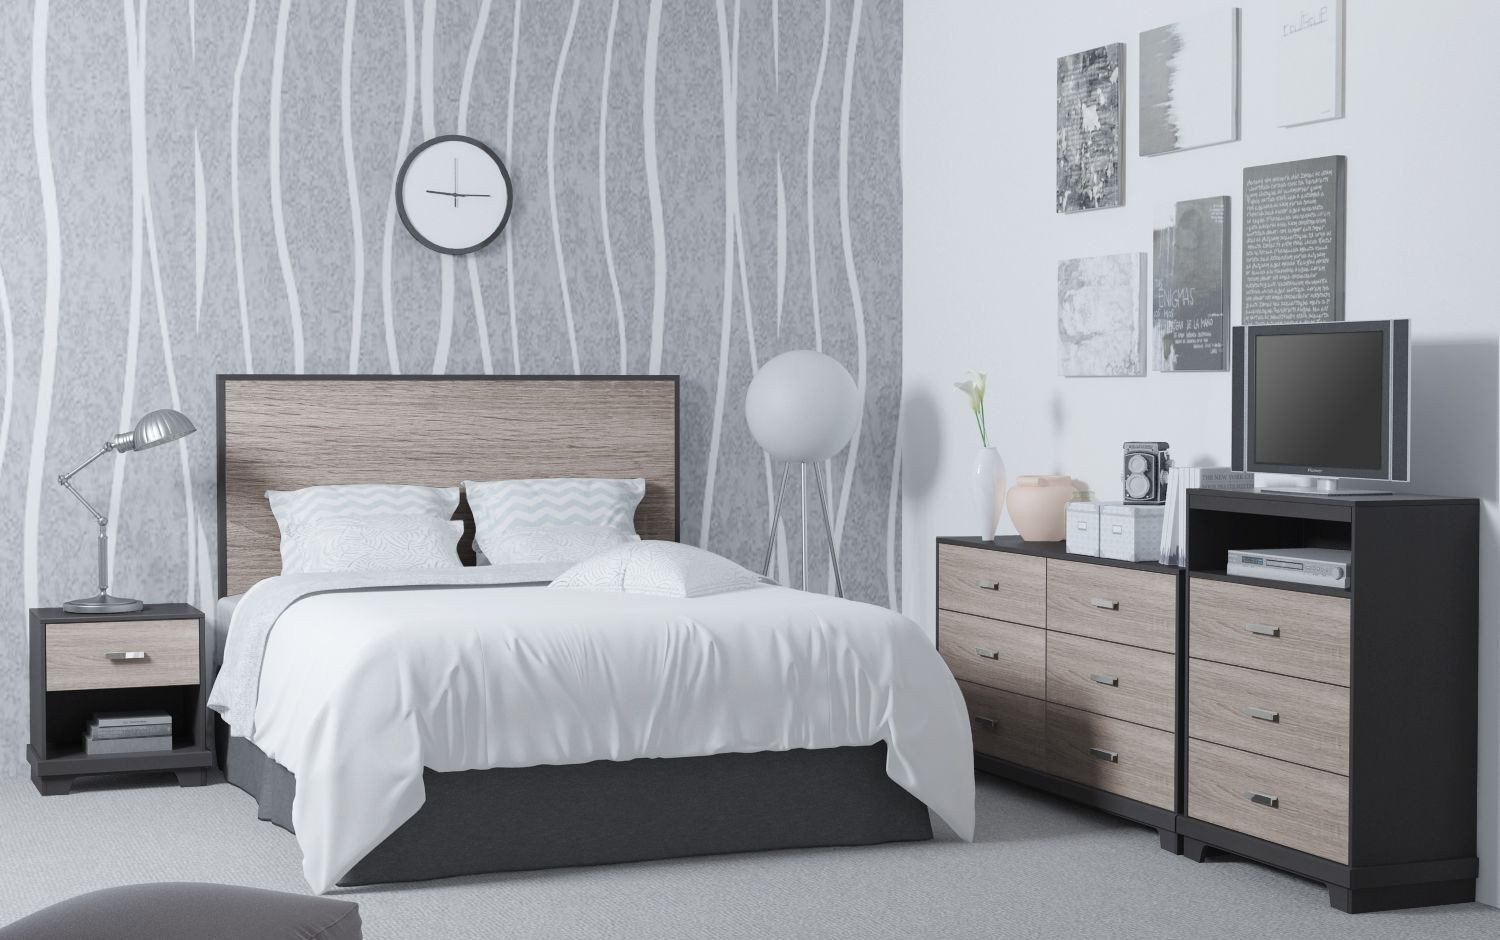 White Lacquer Bedroom Furniture Luxury Pin by Homestar north America On Bedrooms Collection